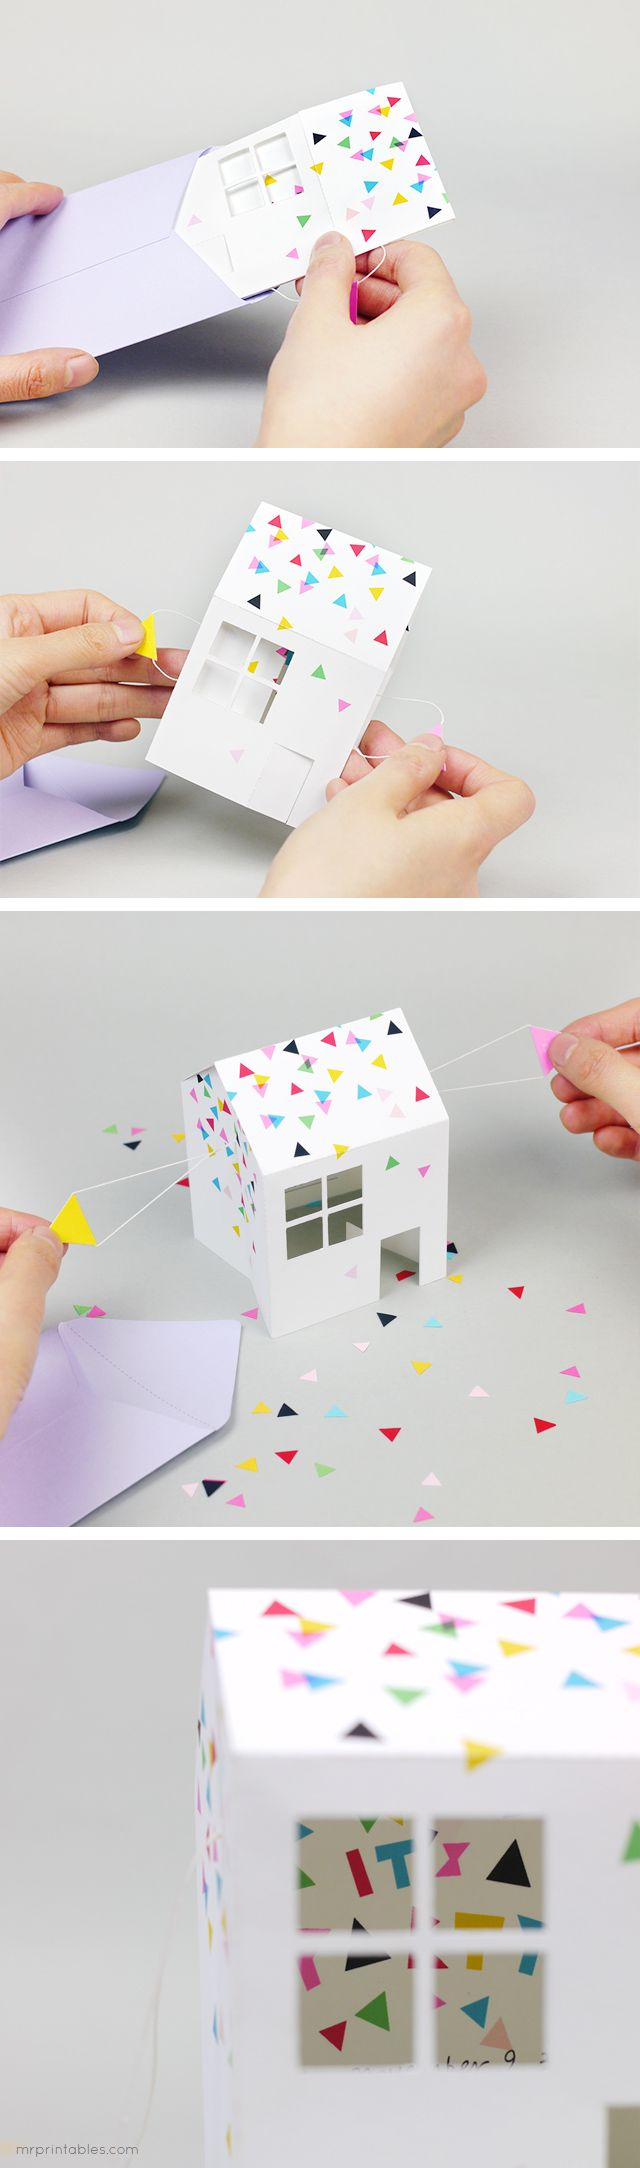 DIY Pop-up House Party Invitation | Templates & Paper Folding ...